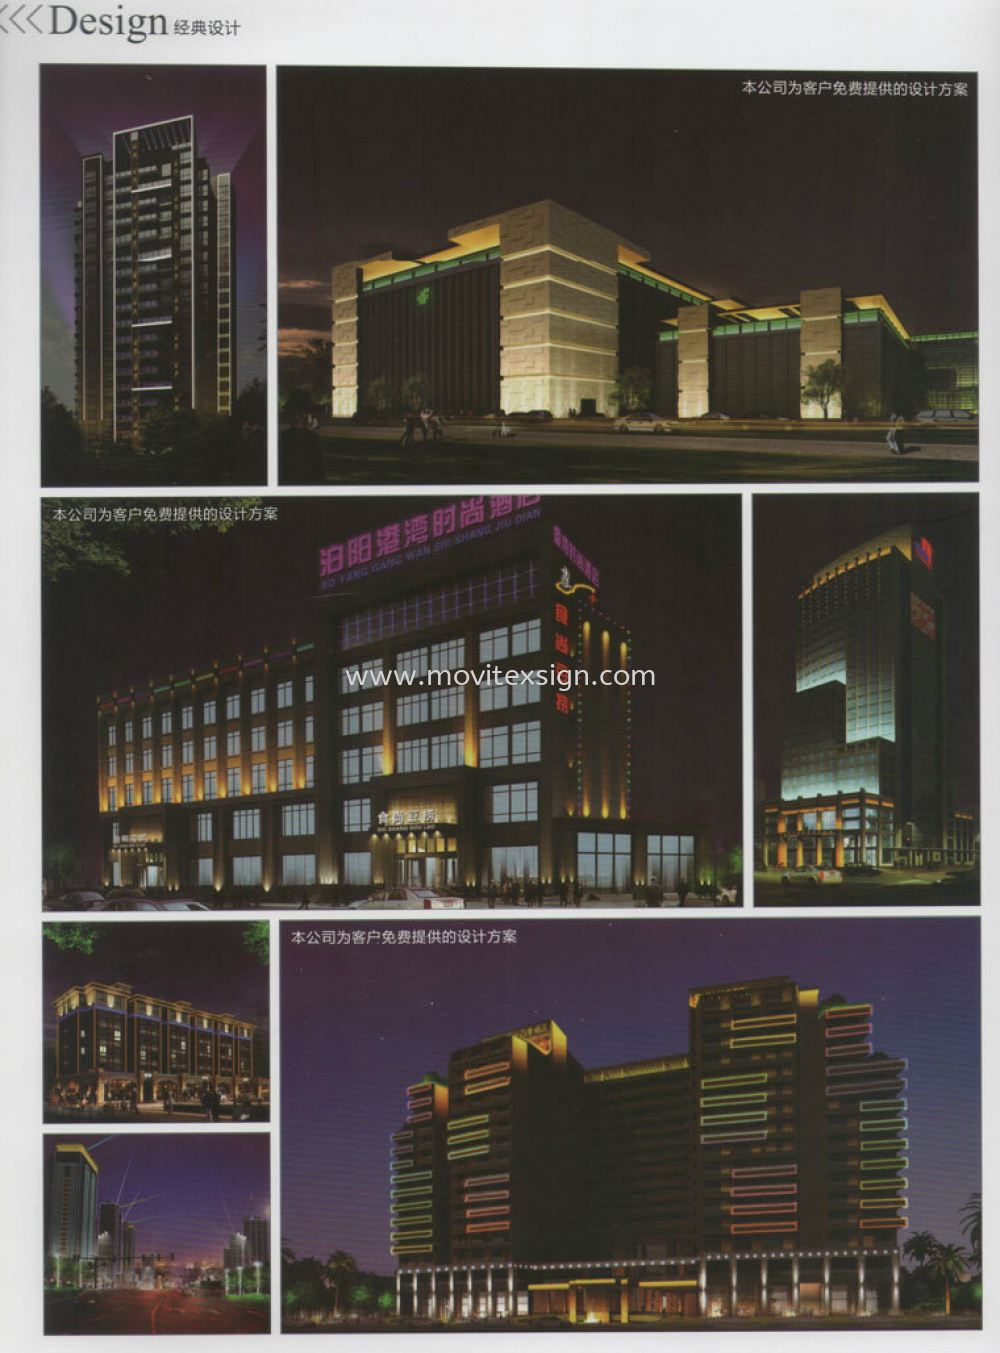 Design Led on building lightning facade Design Johor Bahru (JB), Johor, Malaysia. Design, Supplier, Manufacturers, Suppliers | M-Movitexsign Advertising Art & Print Sdn Bhd